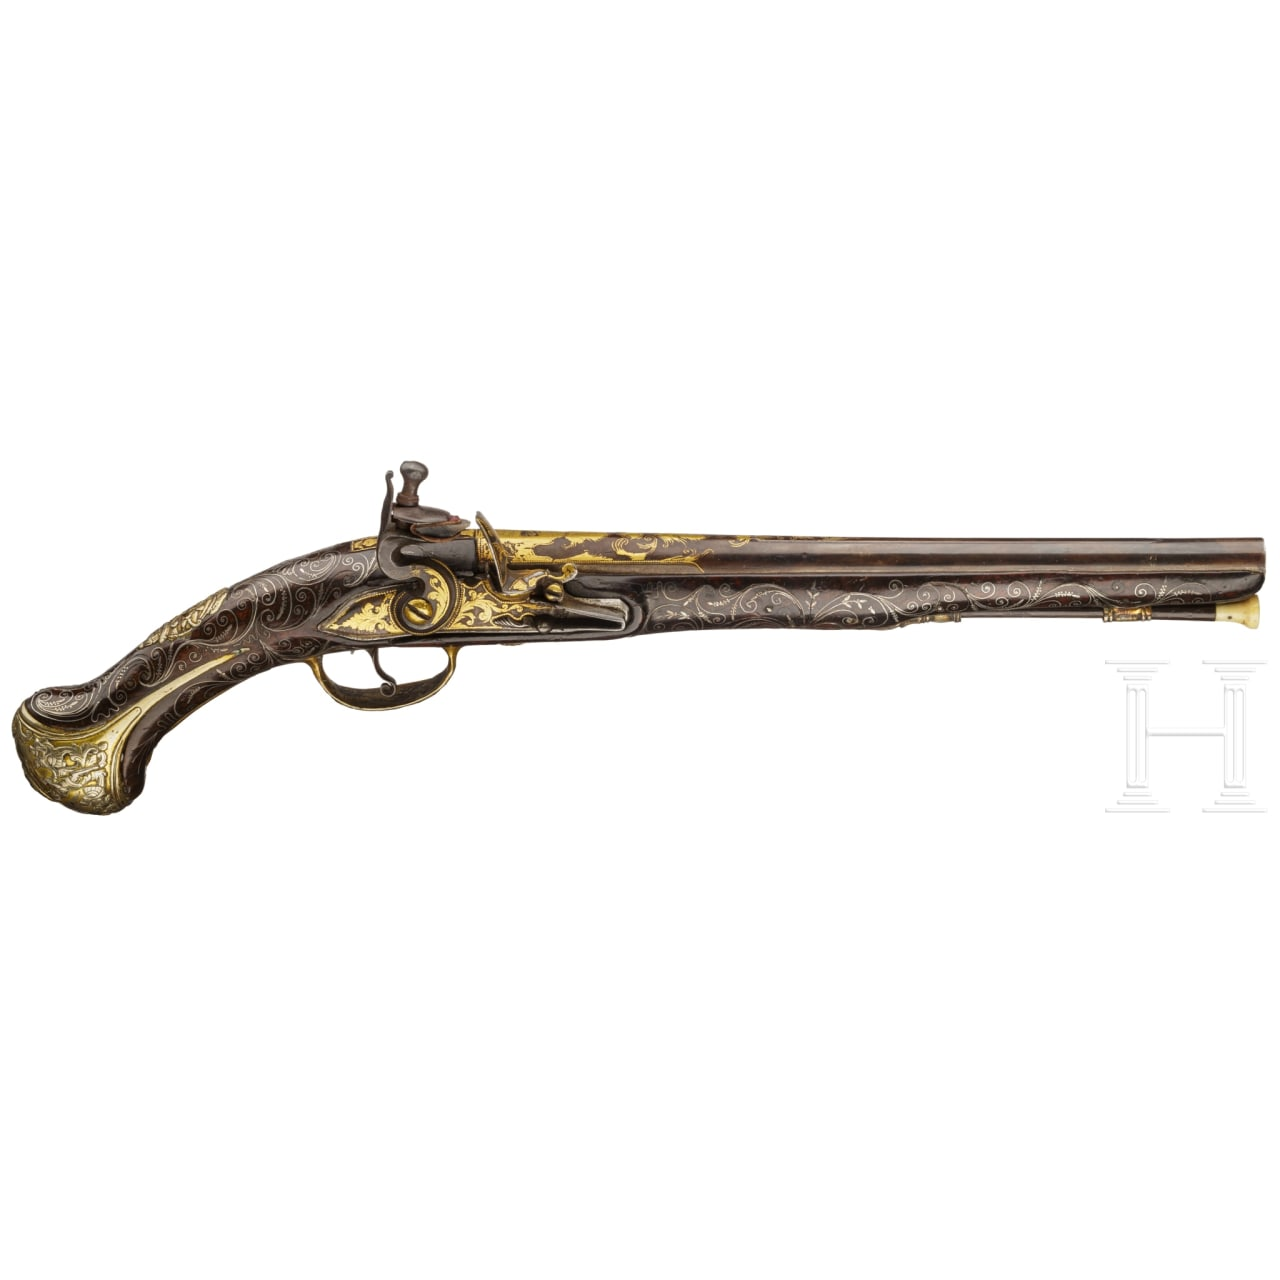 An Ottoman gold-damascened flintlock pistol (Kubur), circa 1800